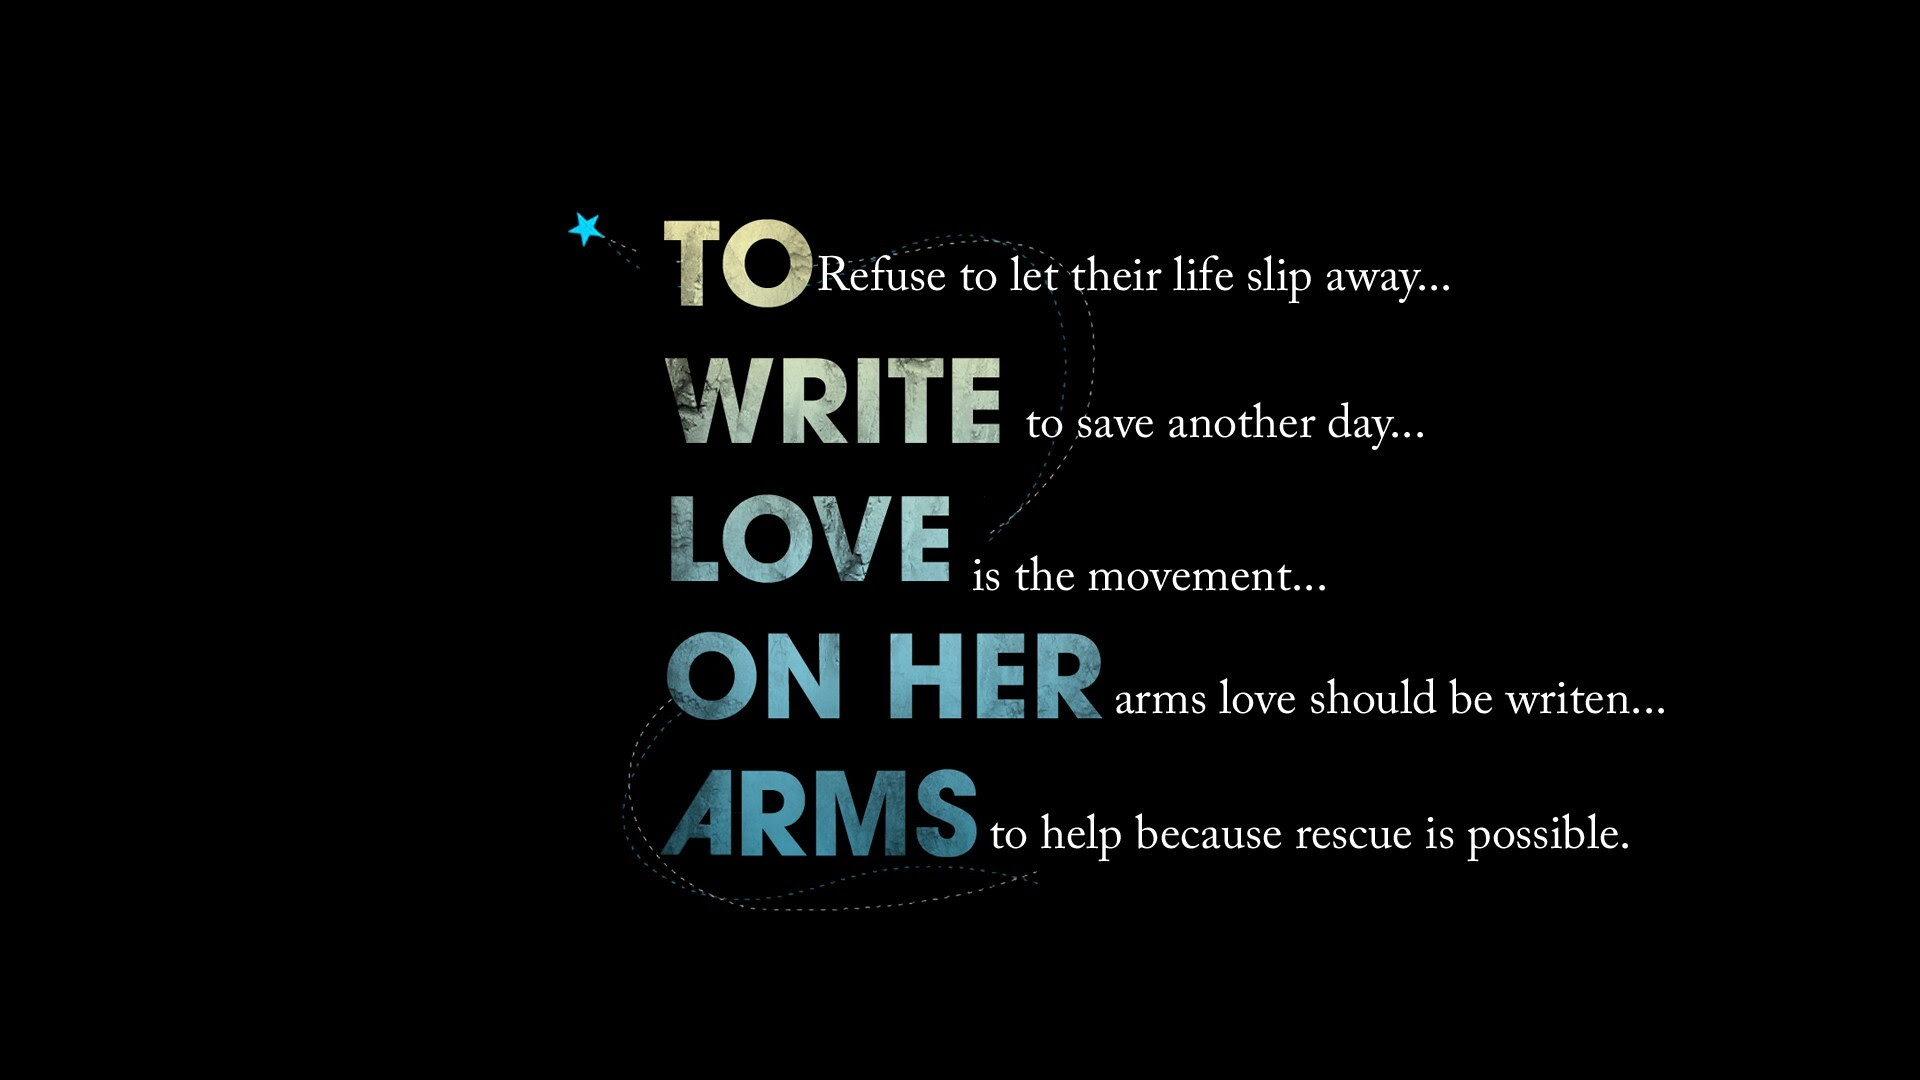 New Latest Thoughts And Quotes On Love Image Background Hd Wallpapers